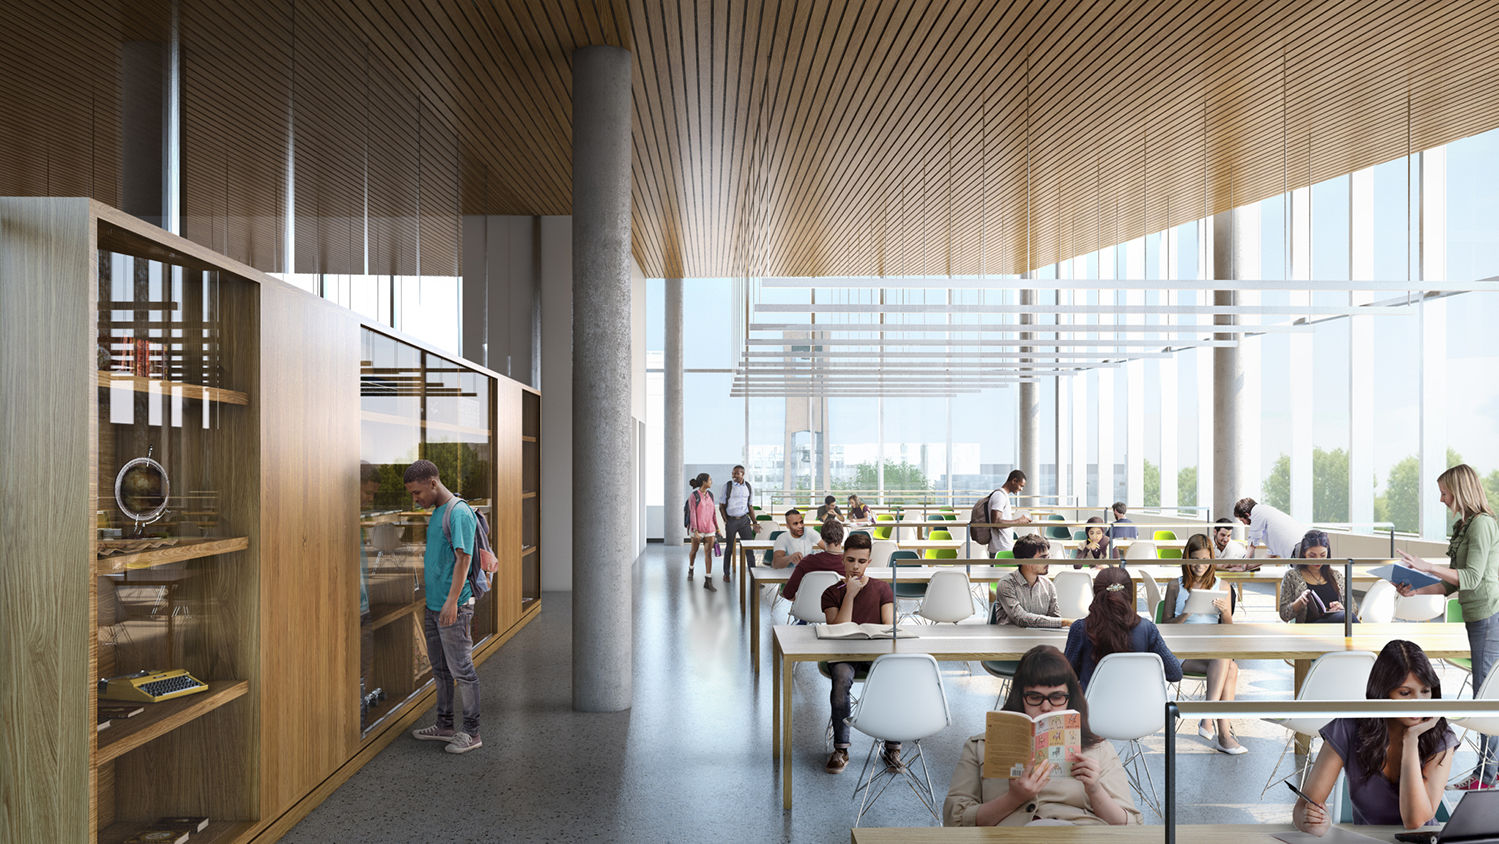 Students sitting at long tables in front of a wall of windows on an upper floor of the new library.